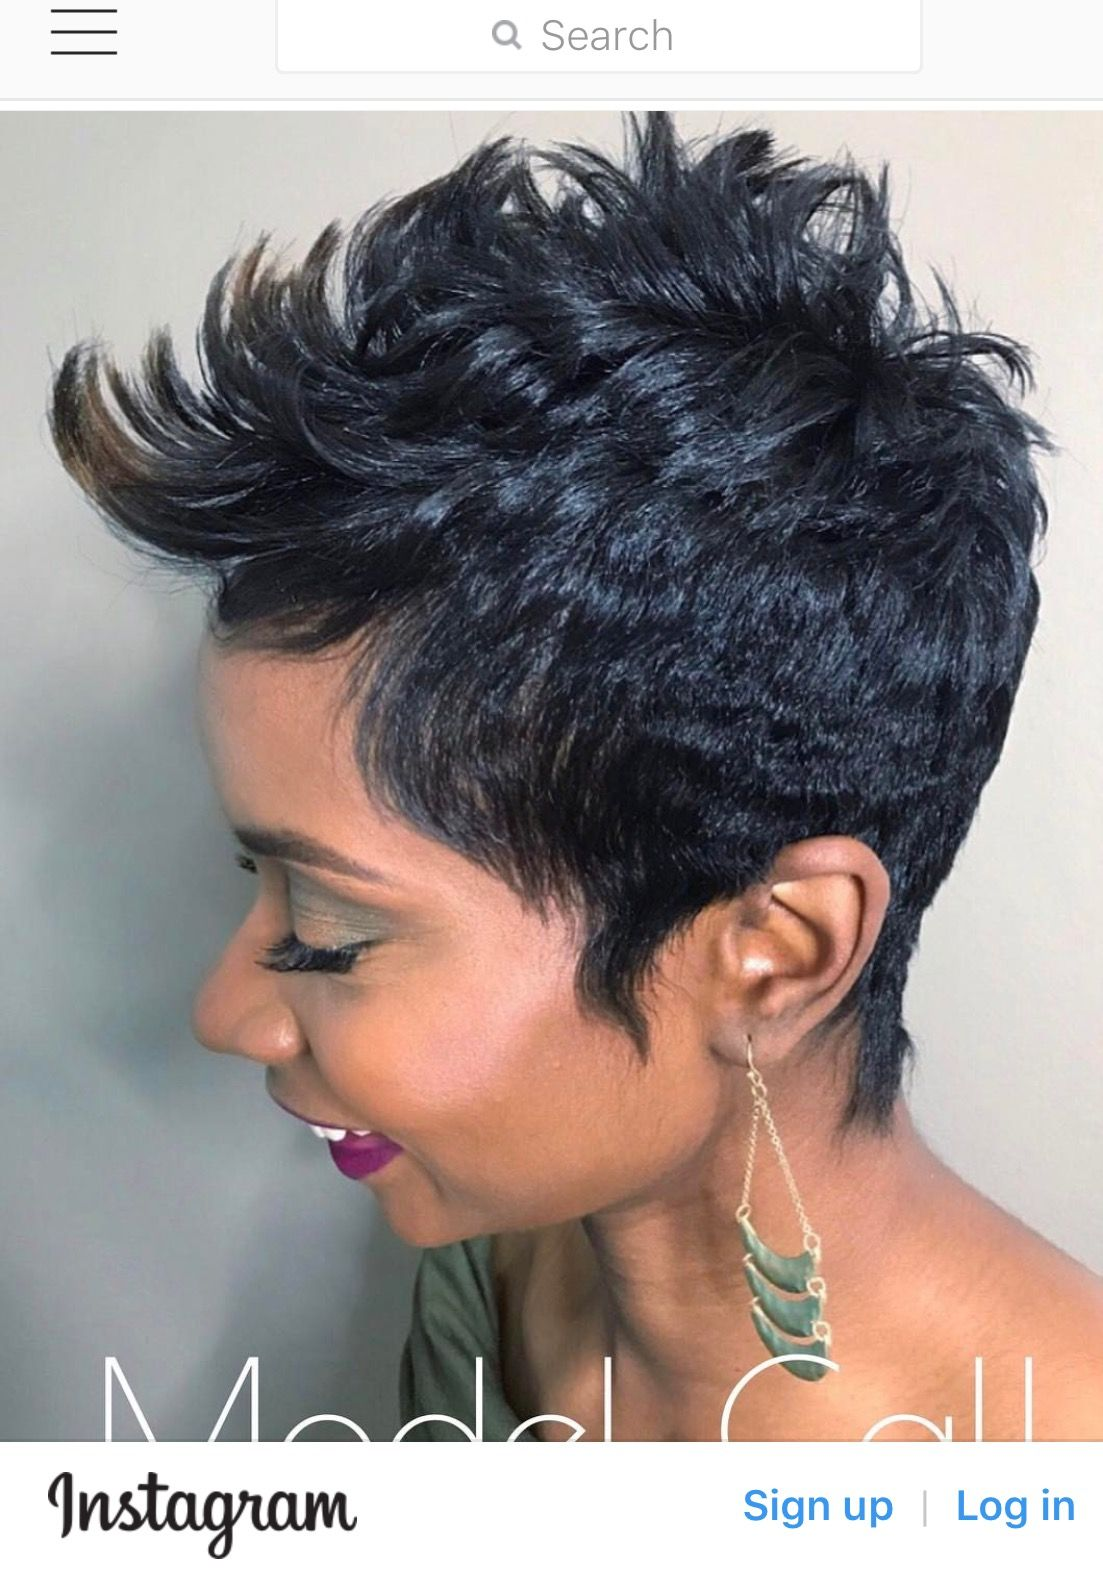 Pin by keah floyd on hairstyles pinterest short hair shorts and